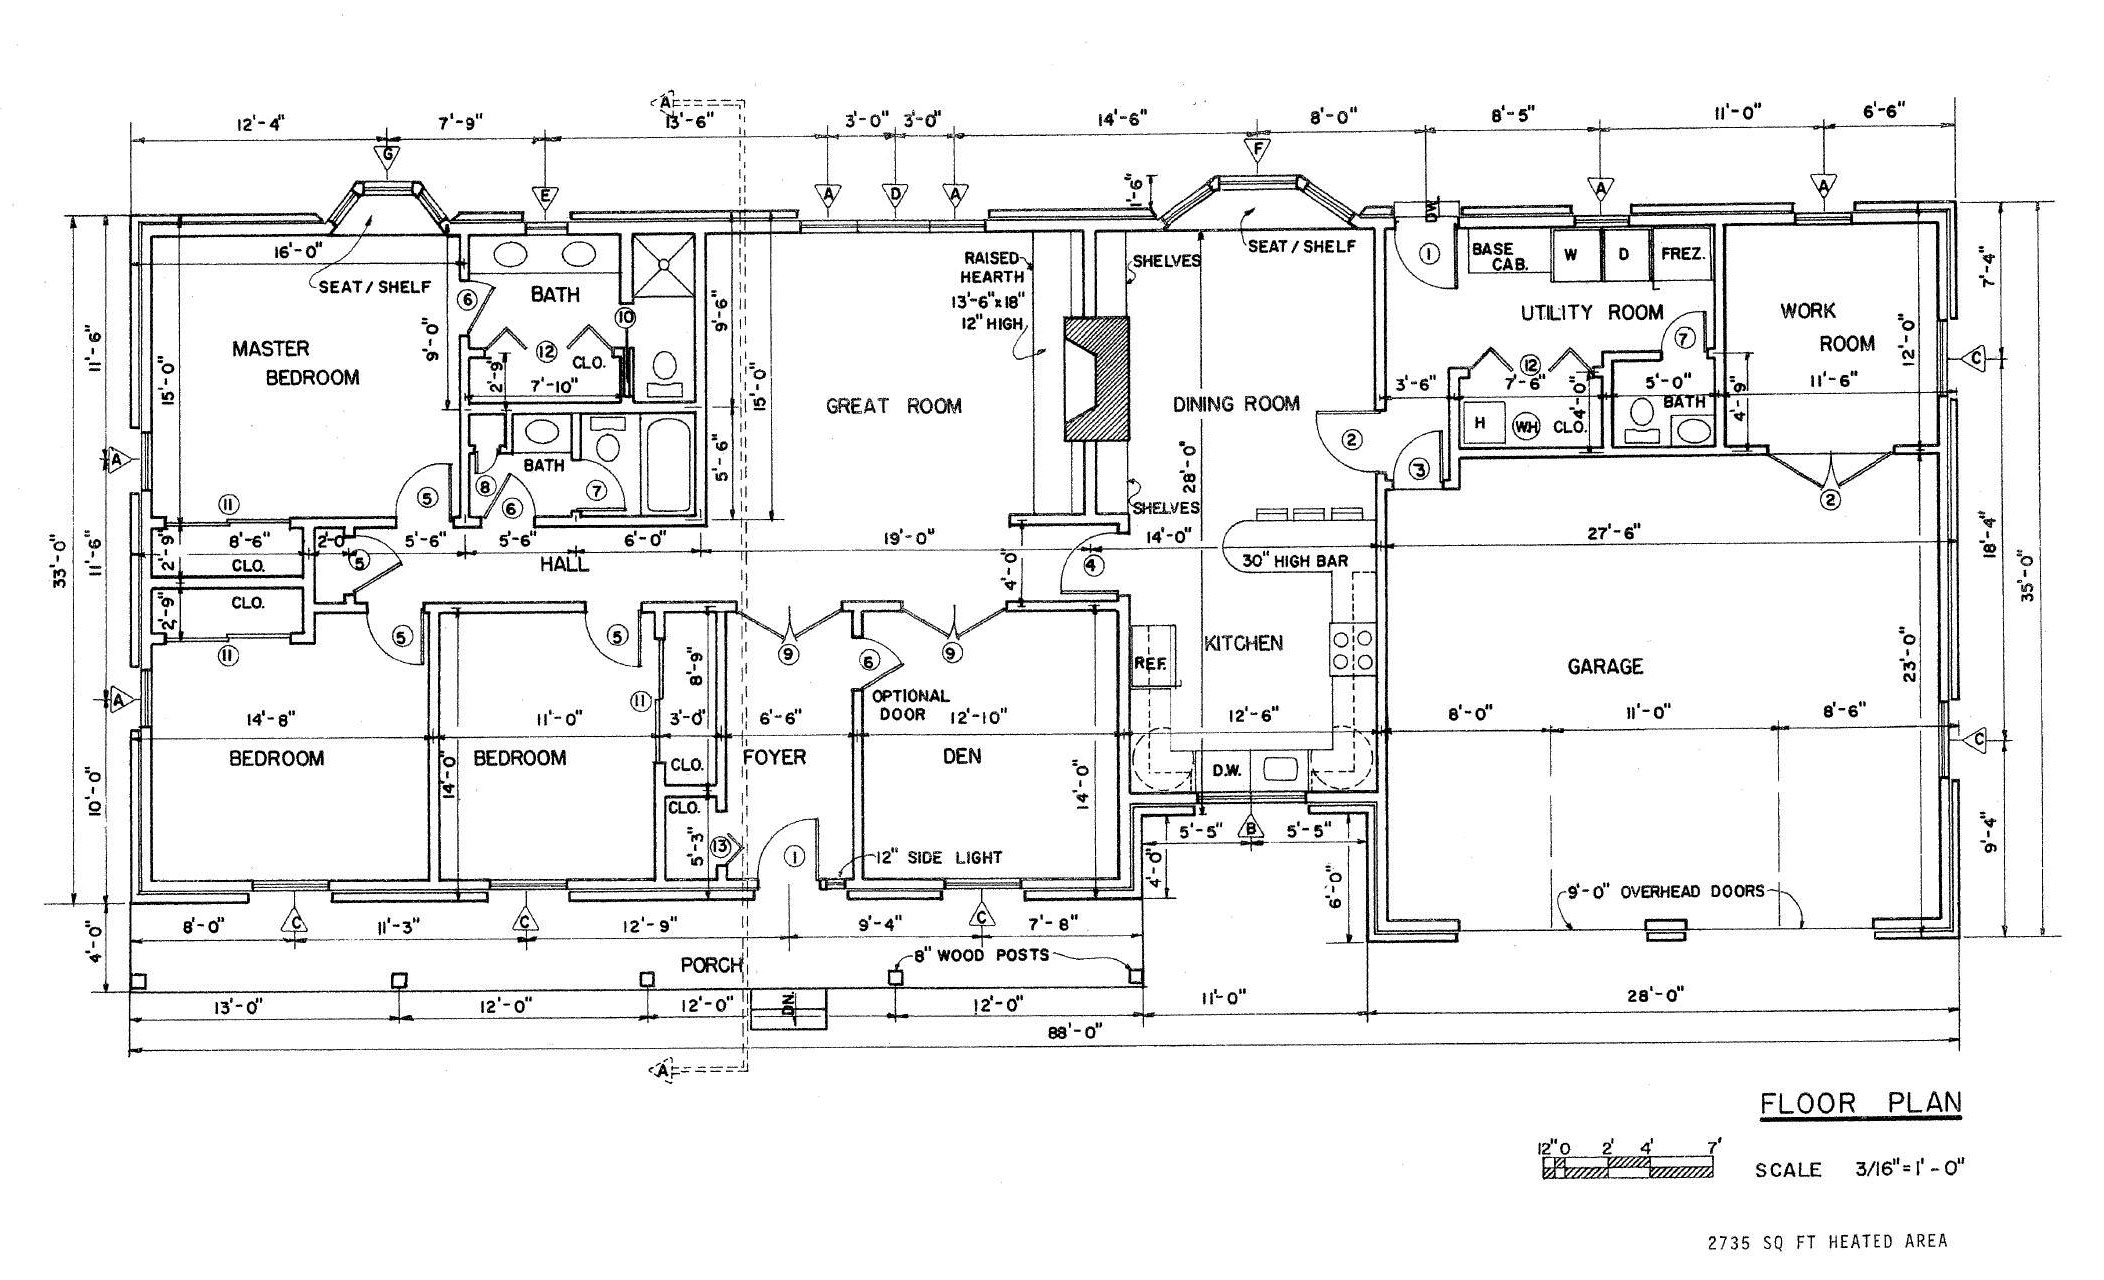 Free country ranch house plans country ranch house floor plans Free house layouts floor plans